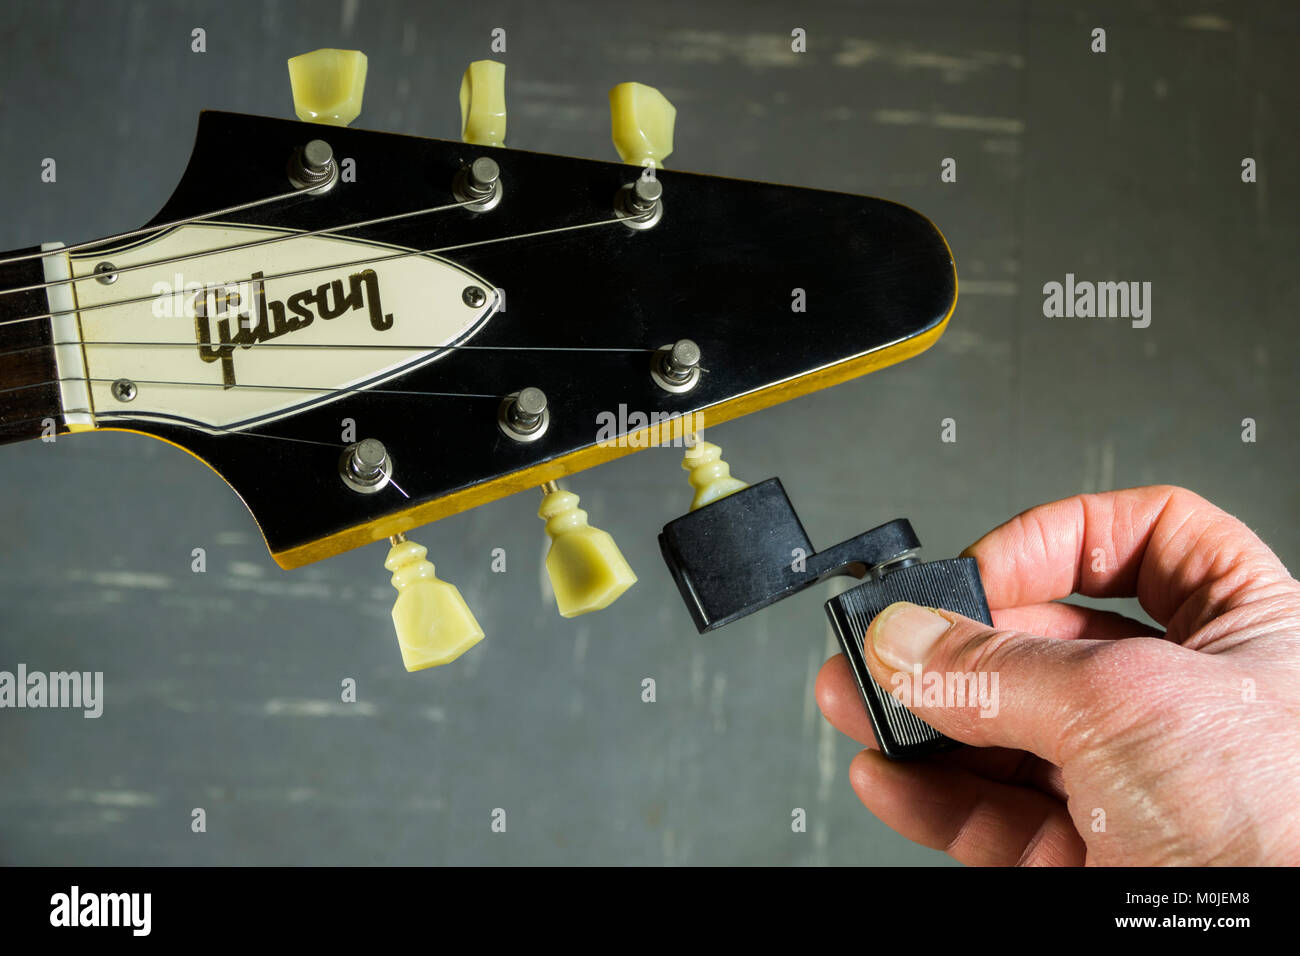 Gibson Flying V electric guitar headstock, with a man's fingers holding a string winder against a tuning peg / tuner, - Stock Image